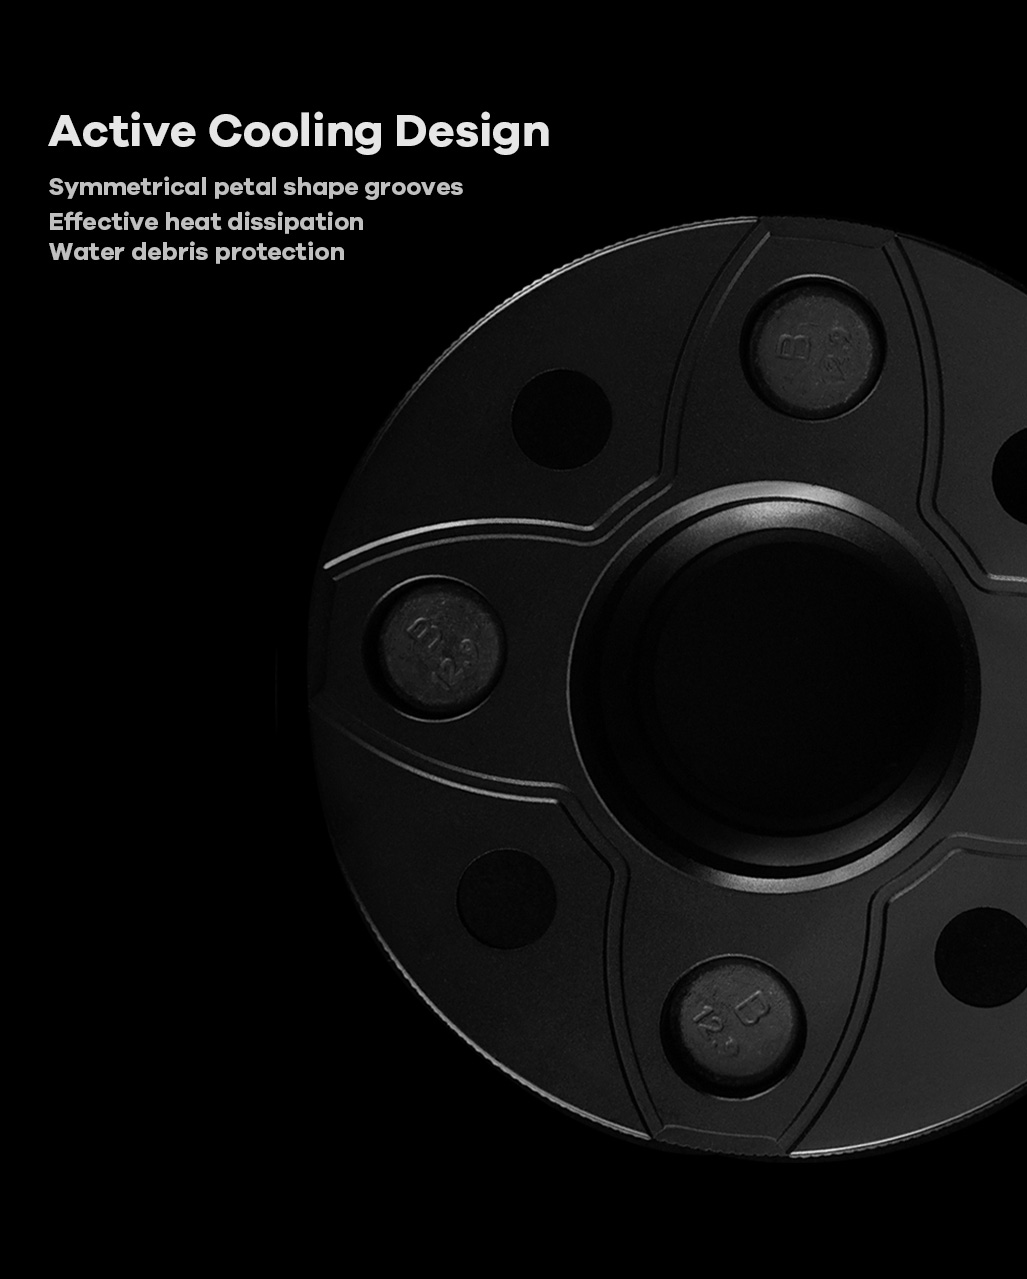 BONOSS-forged-active-cooling-hubcentric 4x110 wheel-spacer-by-lulu-3